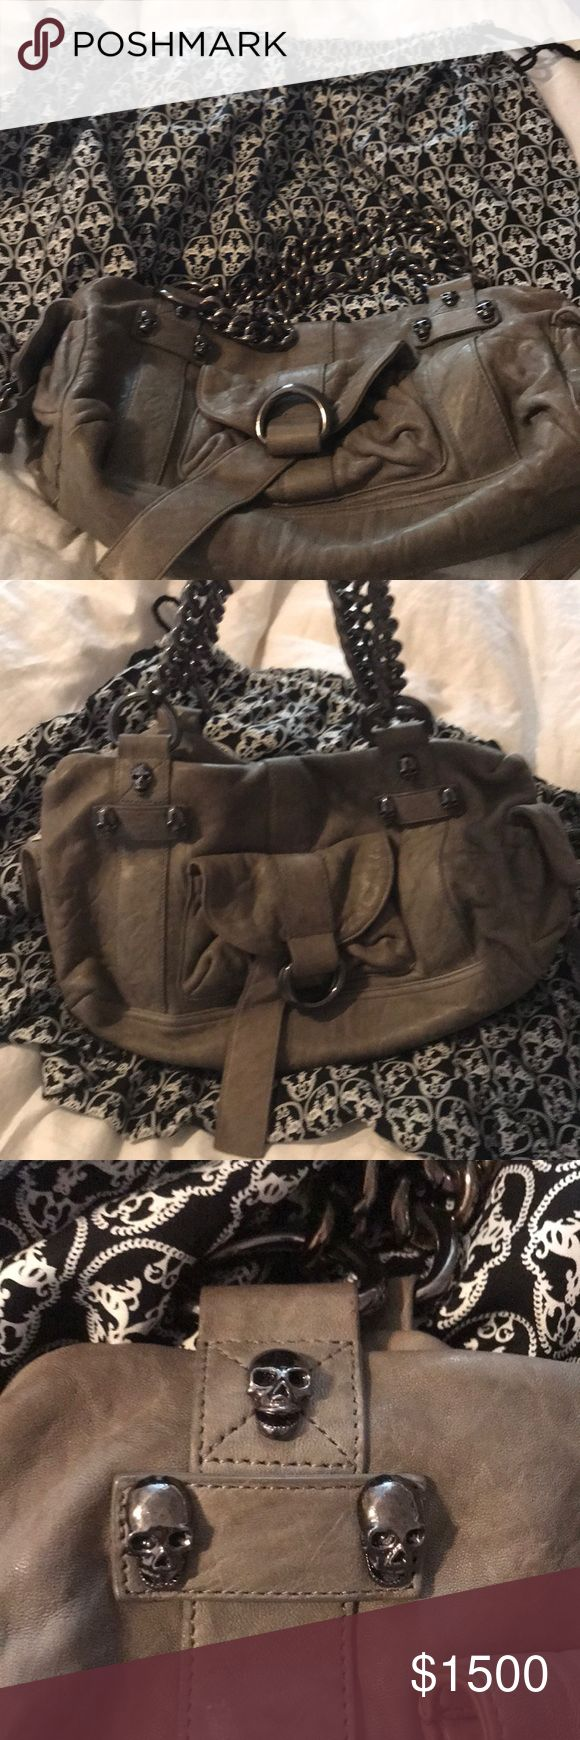 Authentic Thomas Wylde lambskin skull bag authentic gray thomas wylde skull bag! It is lambskin! It comes with the dust bags! Has gorgeous skull detail as well as the classic chain hardware! This bag is for a true rockstar! It has an inside pocket as well two side pockets and one front pocket  Dimensions 16x8x6.5 Thomas Wylde Bags Shoulder Bags